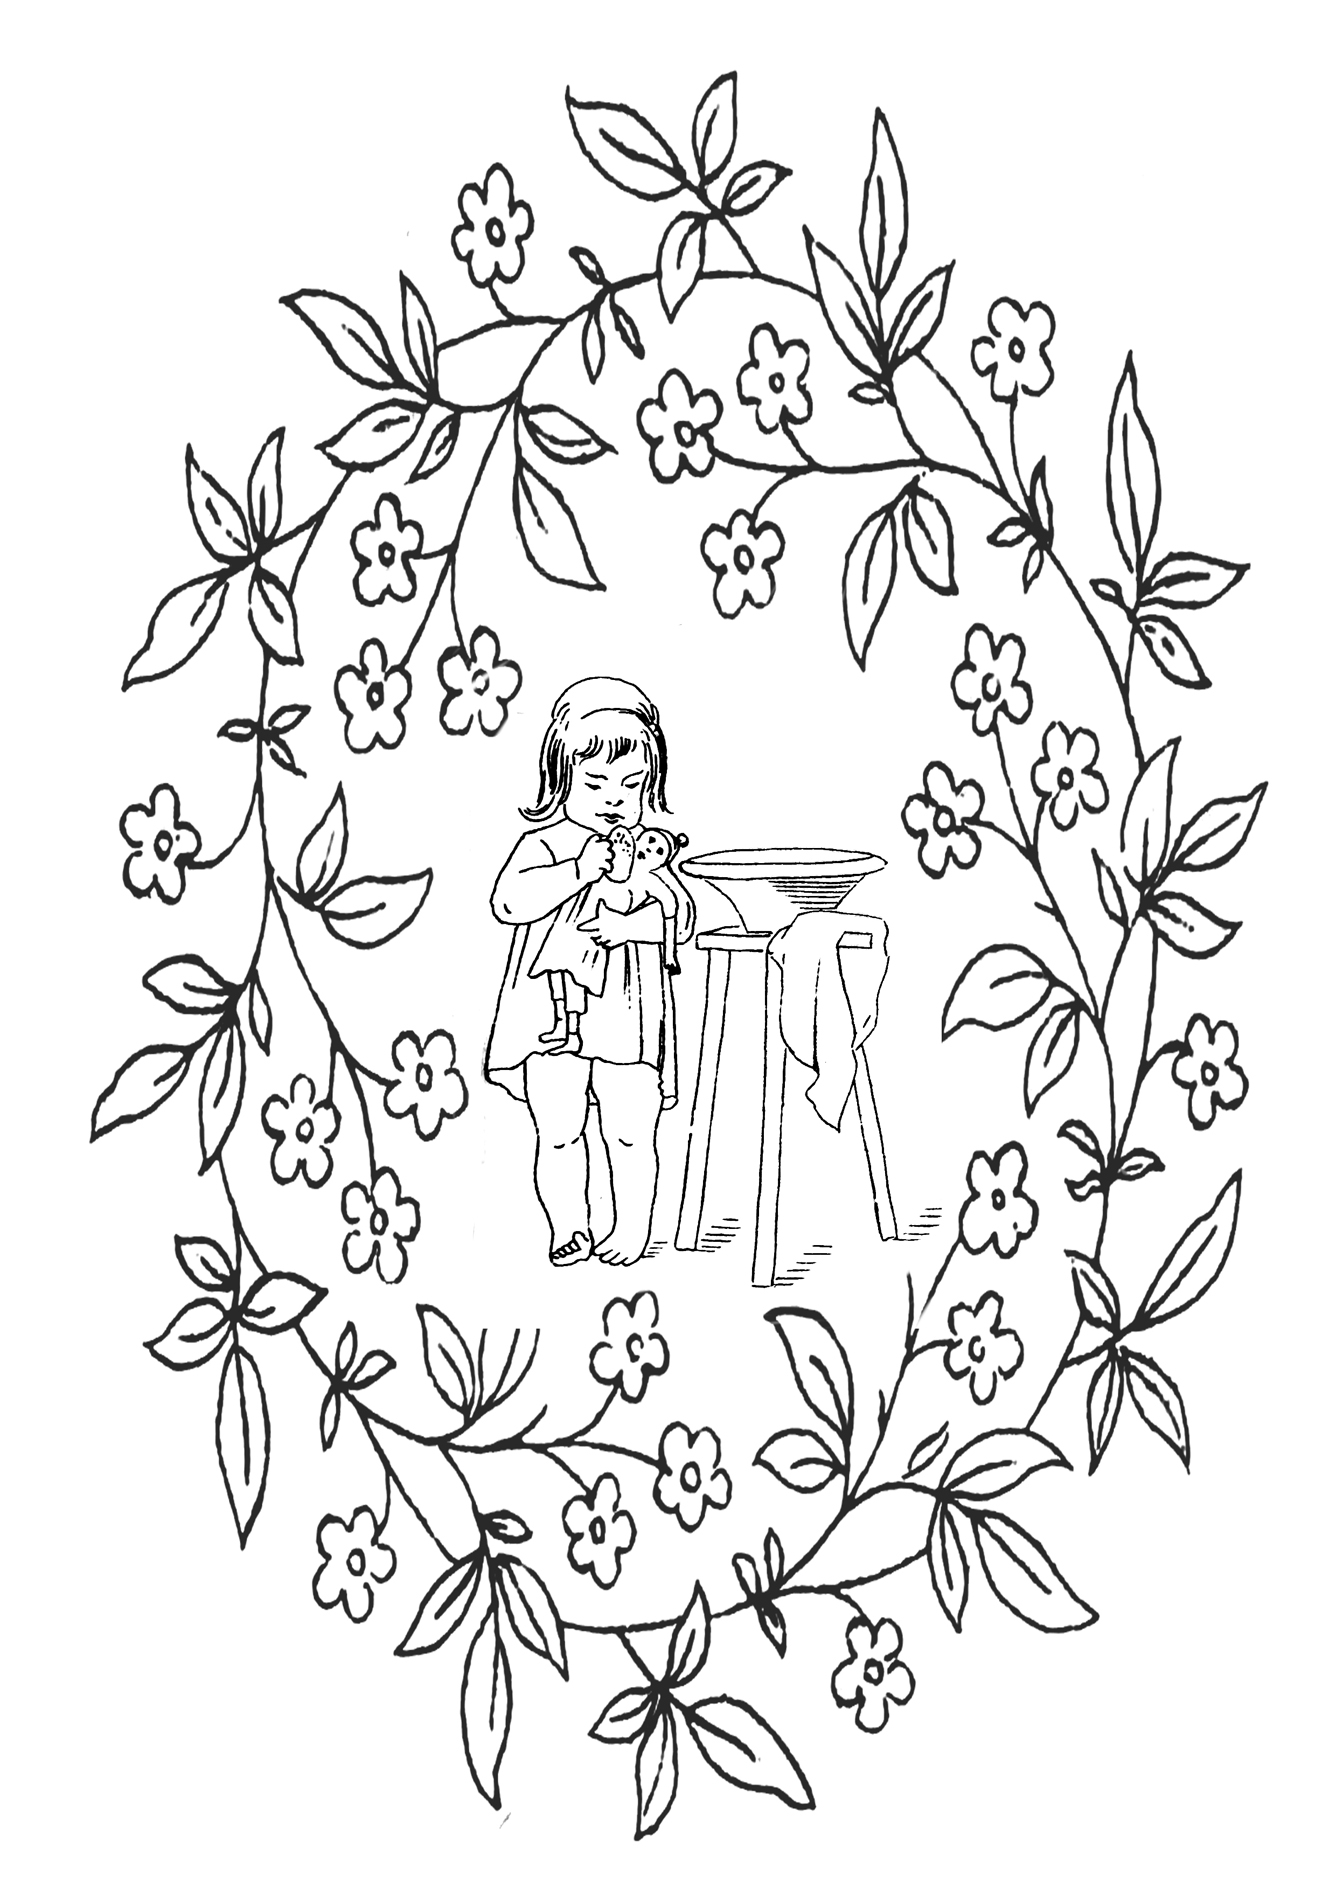 victorian colouring sheets victorian printable coloring pictures victorian colouring sheets